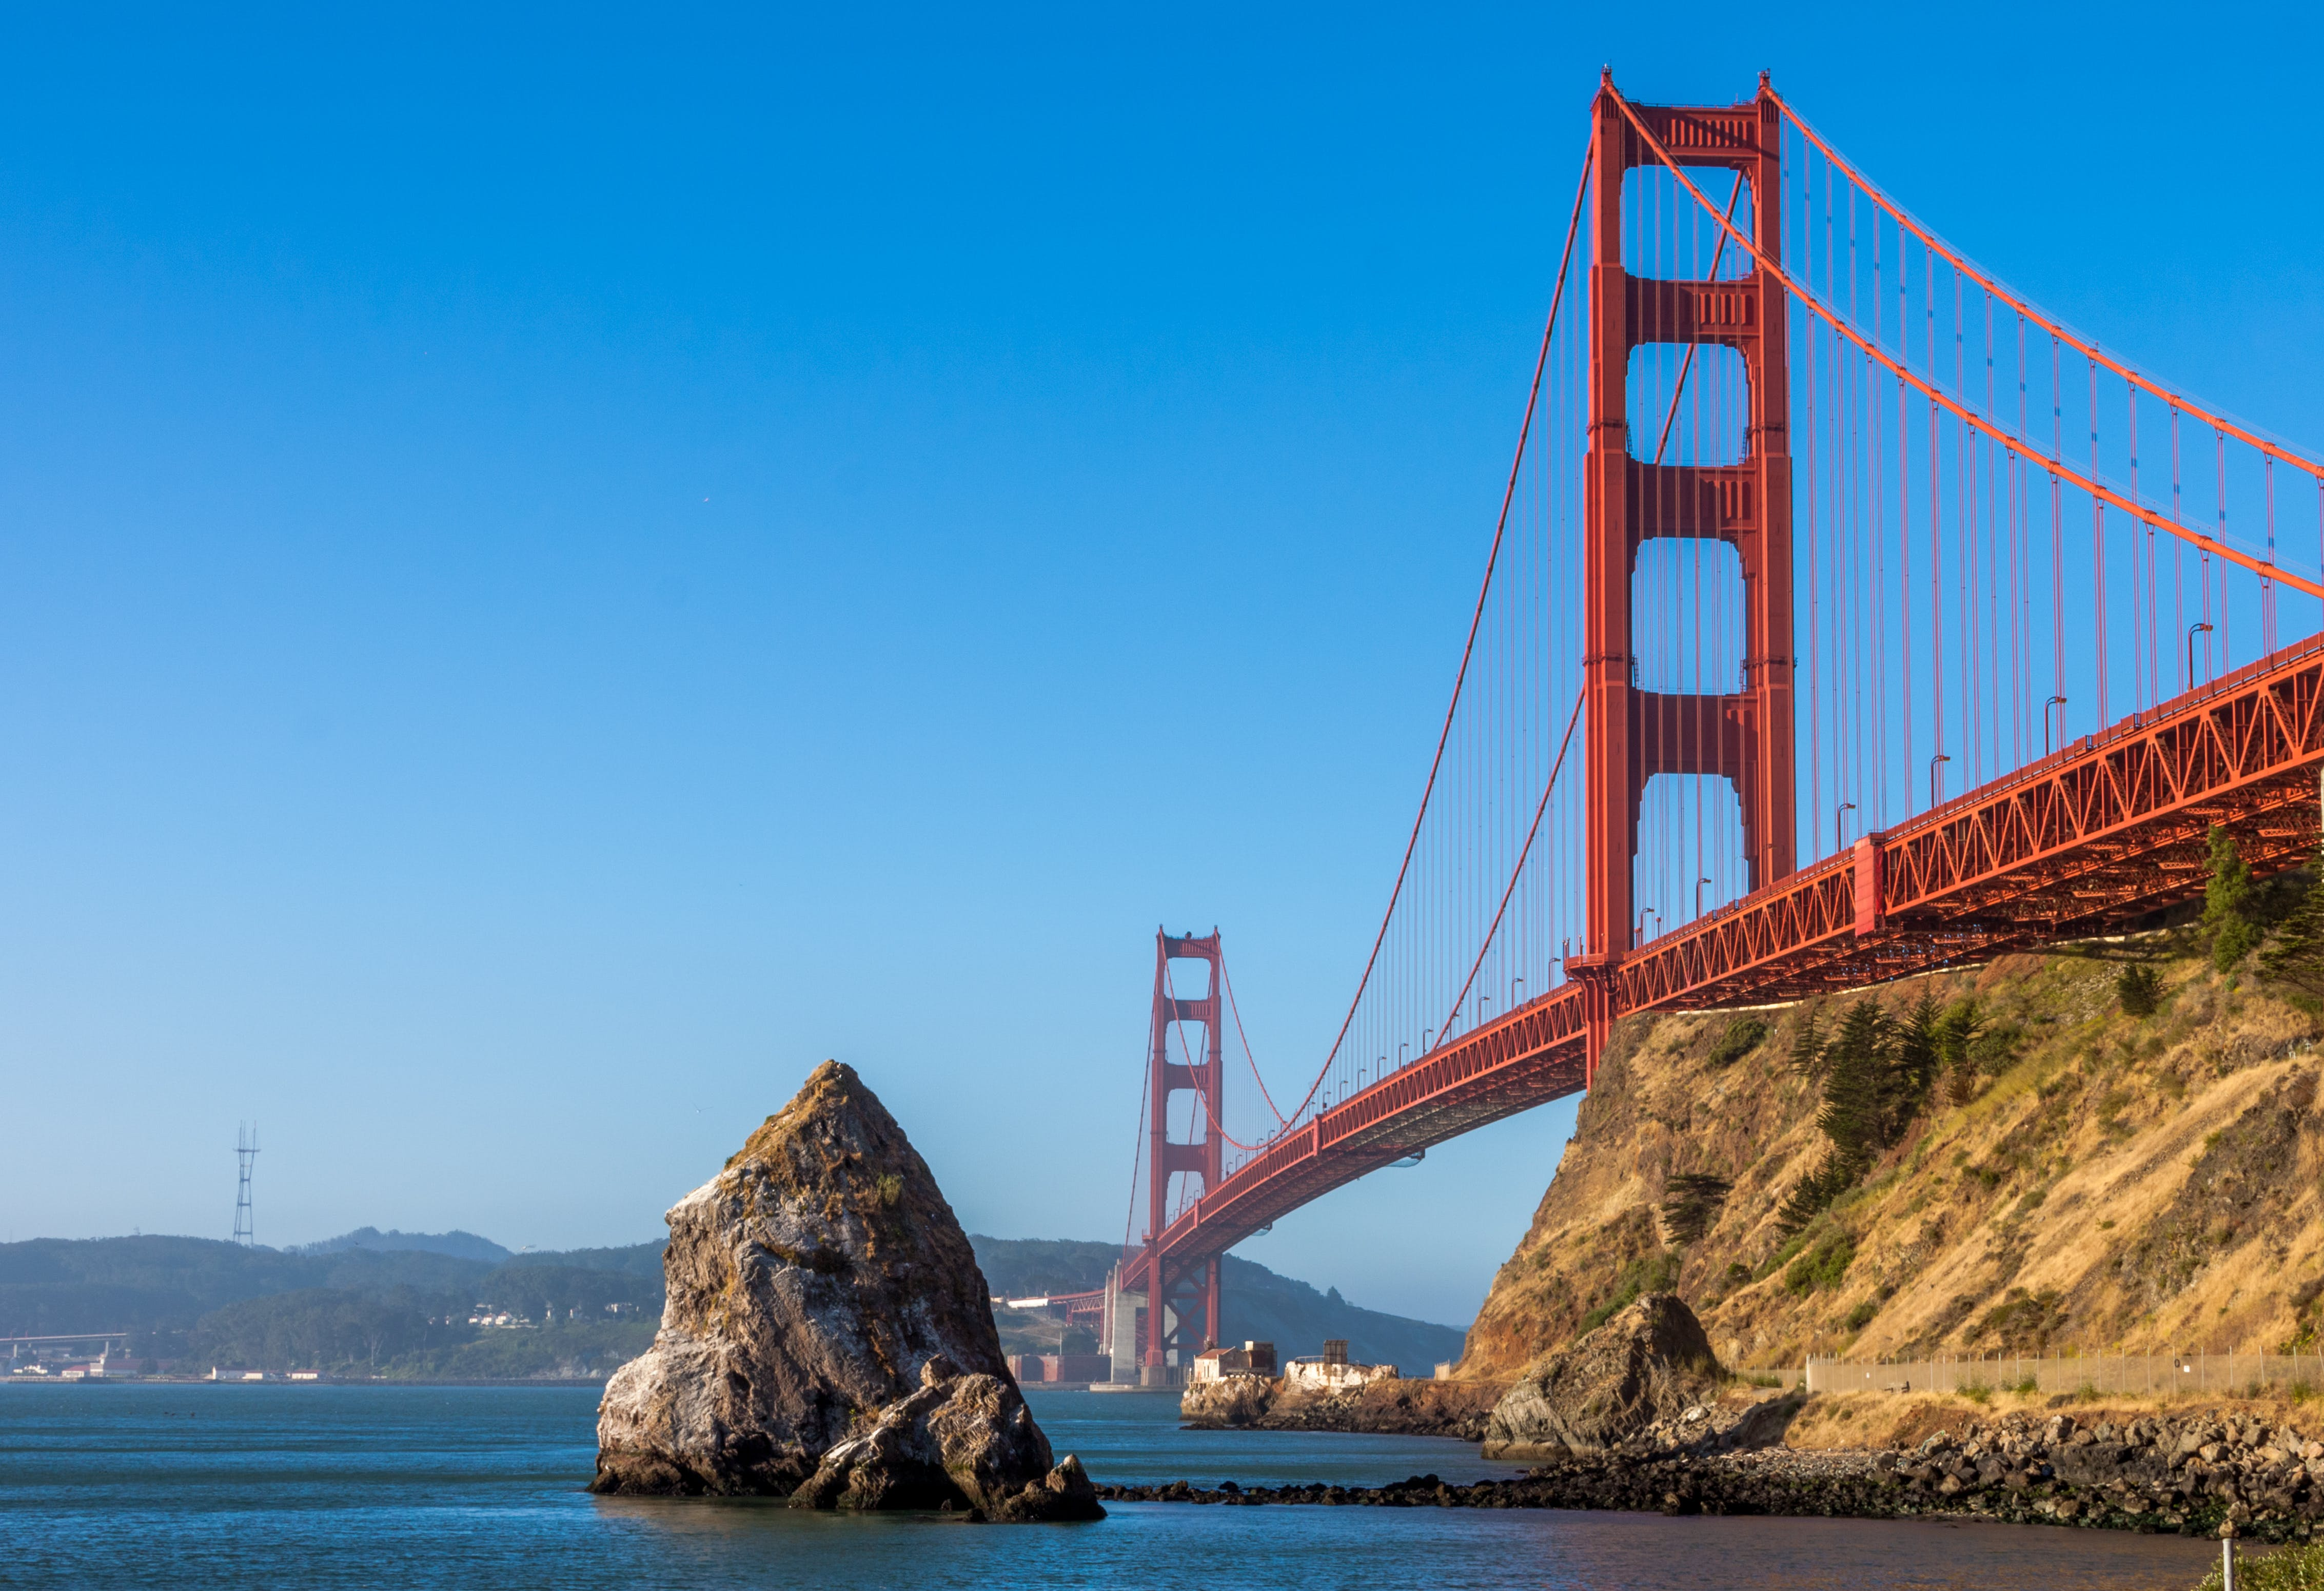 zu architektur, brücke, golden gate bridge, landschaft